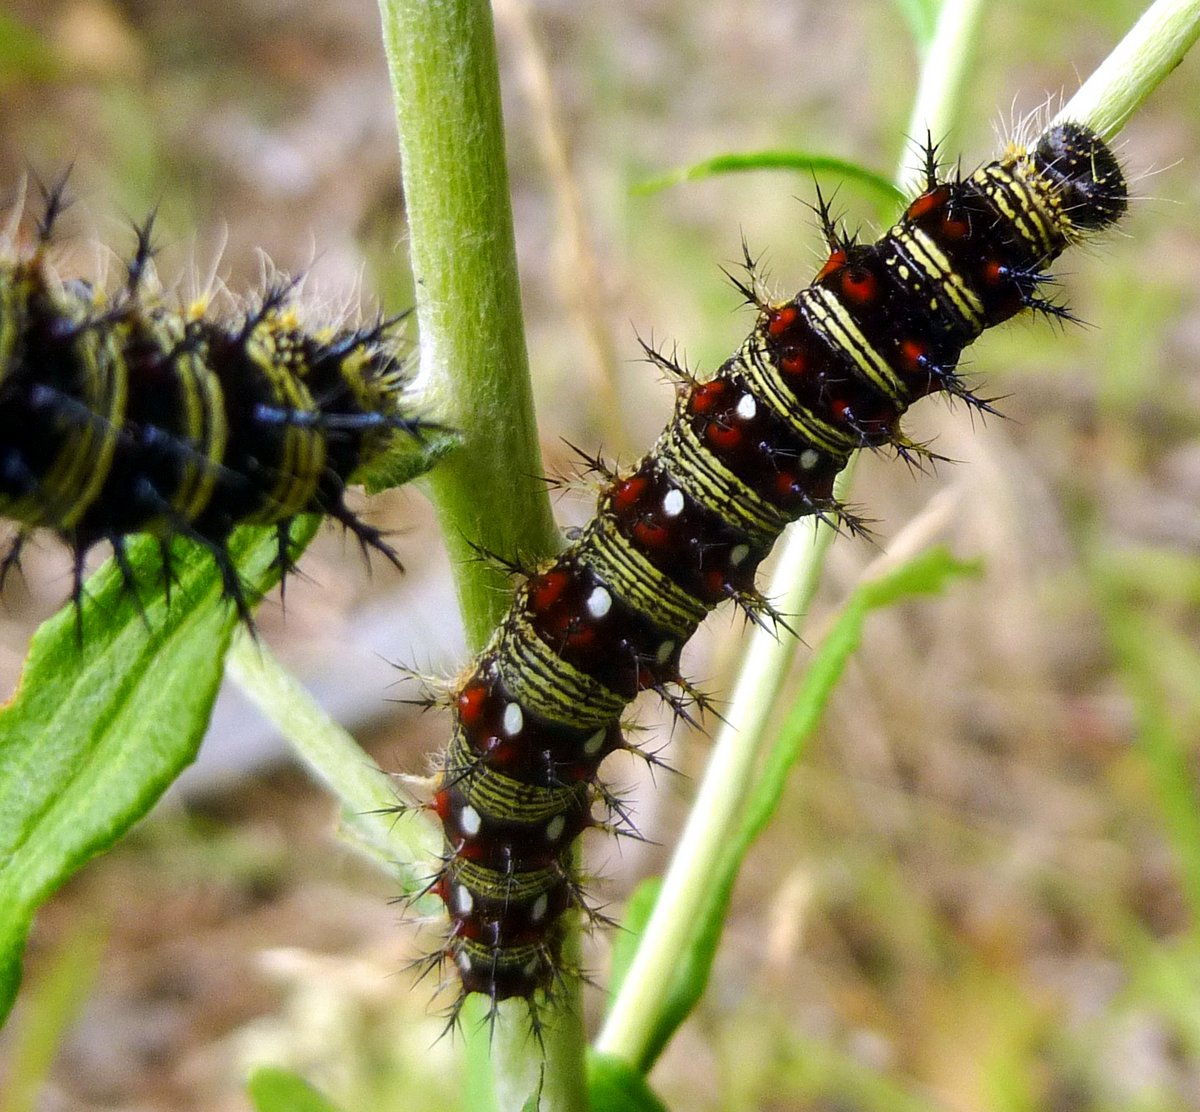 painted lady butterfly caterpillar - photo #46